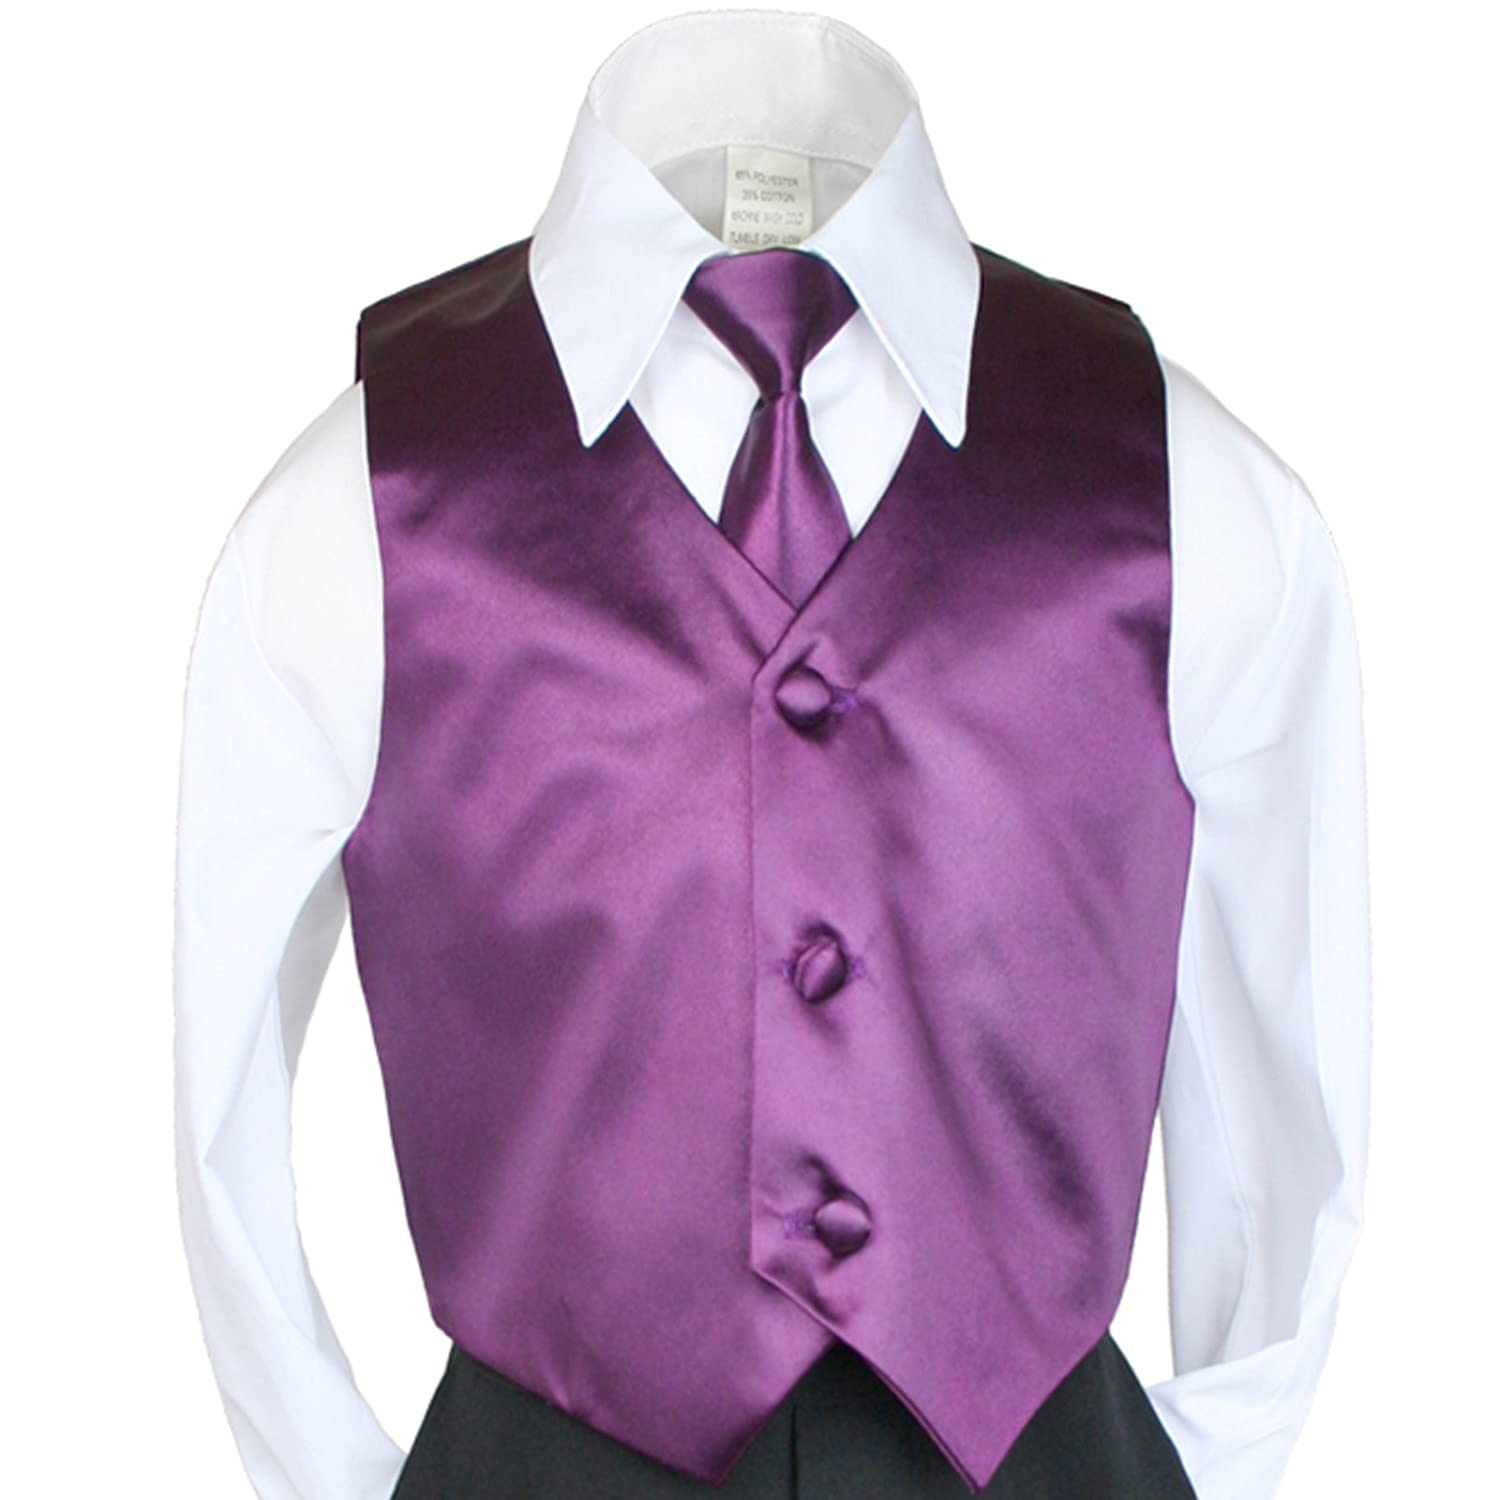 2pc Boys Satin Eggplant Vest and Necktie Set from Baby to Teen 4T